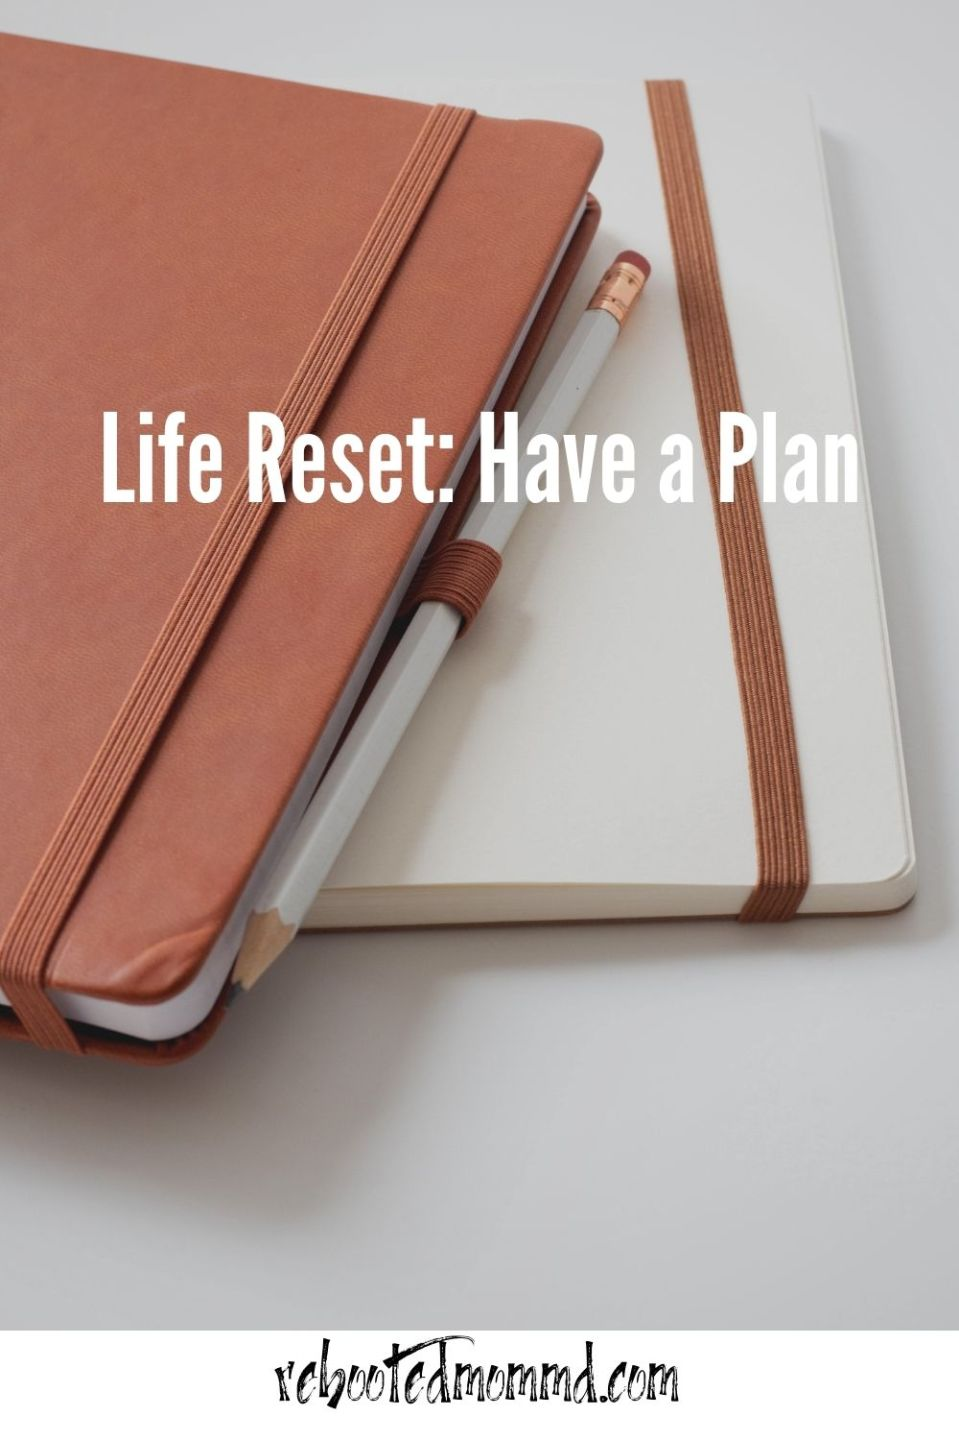 Life Reset: Have a Plan